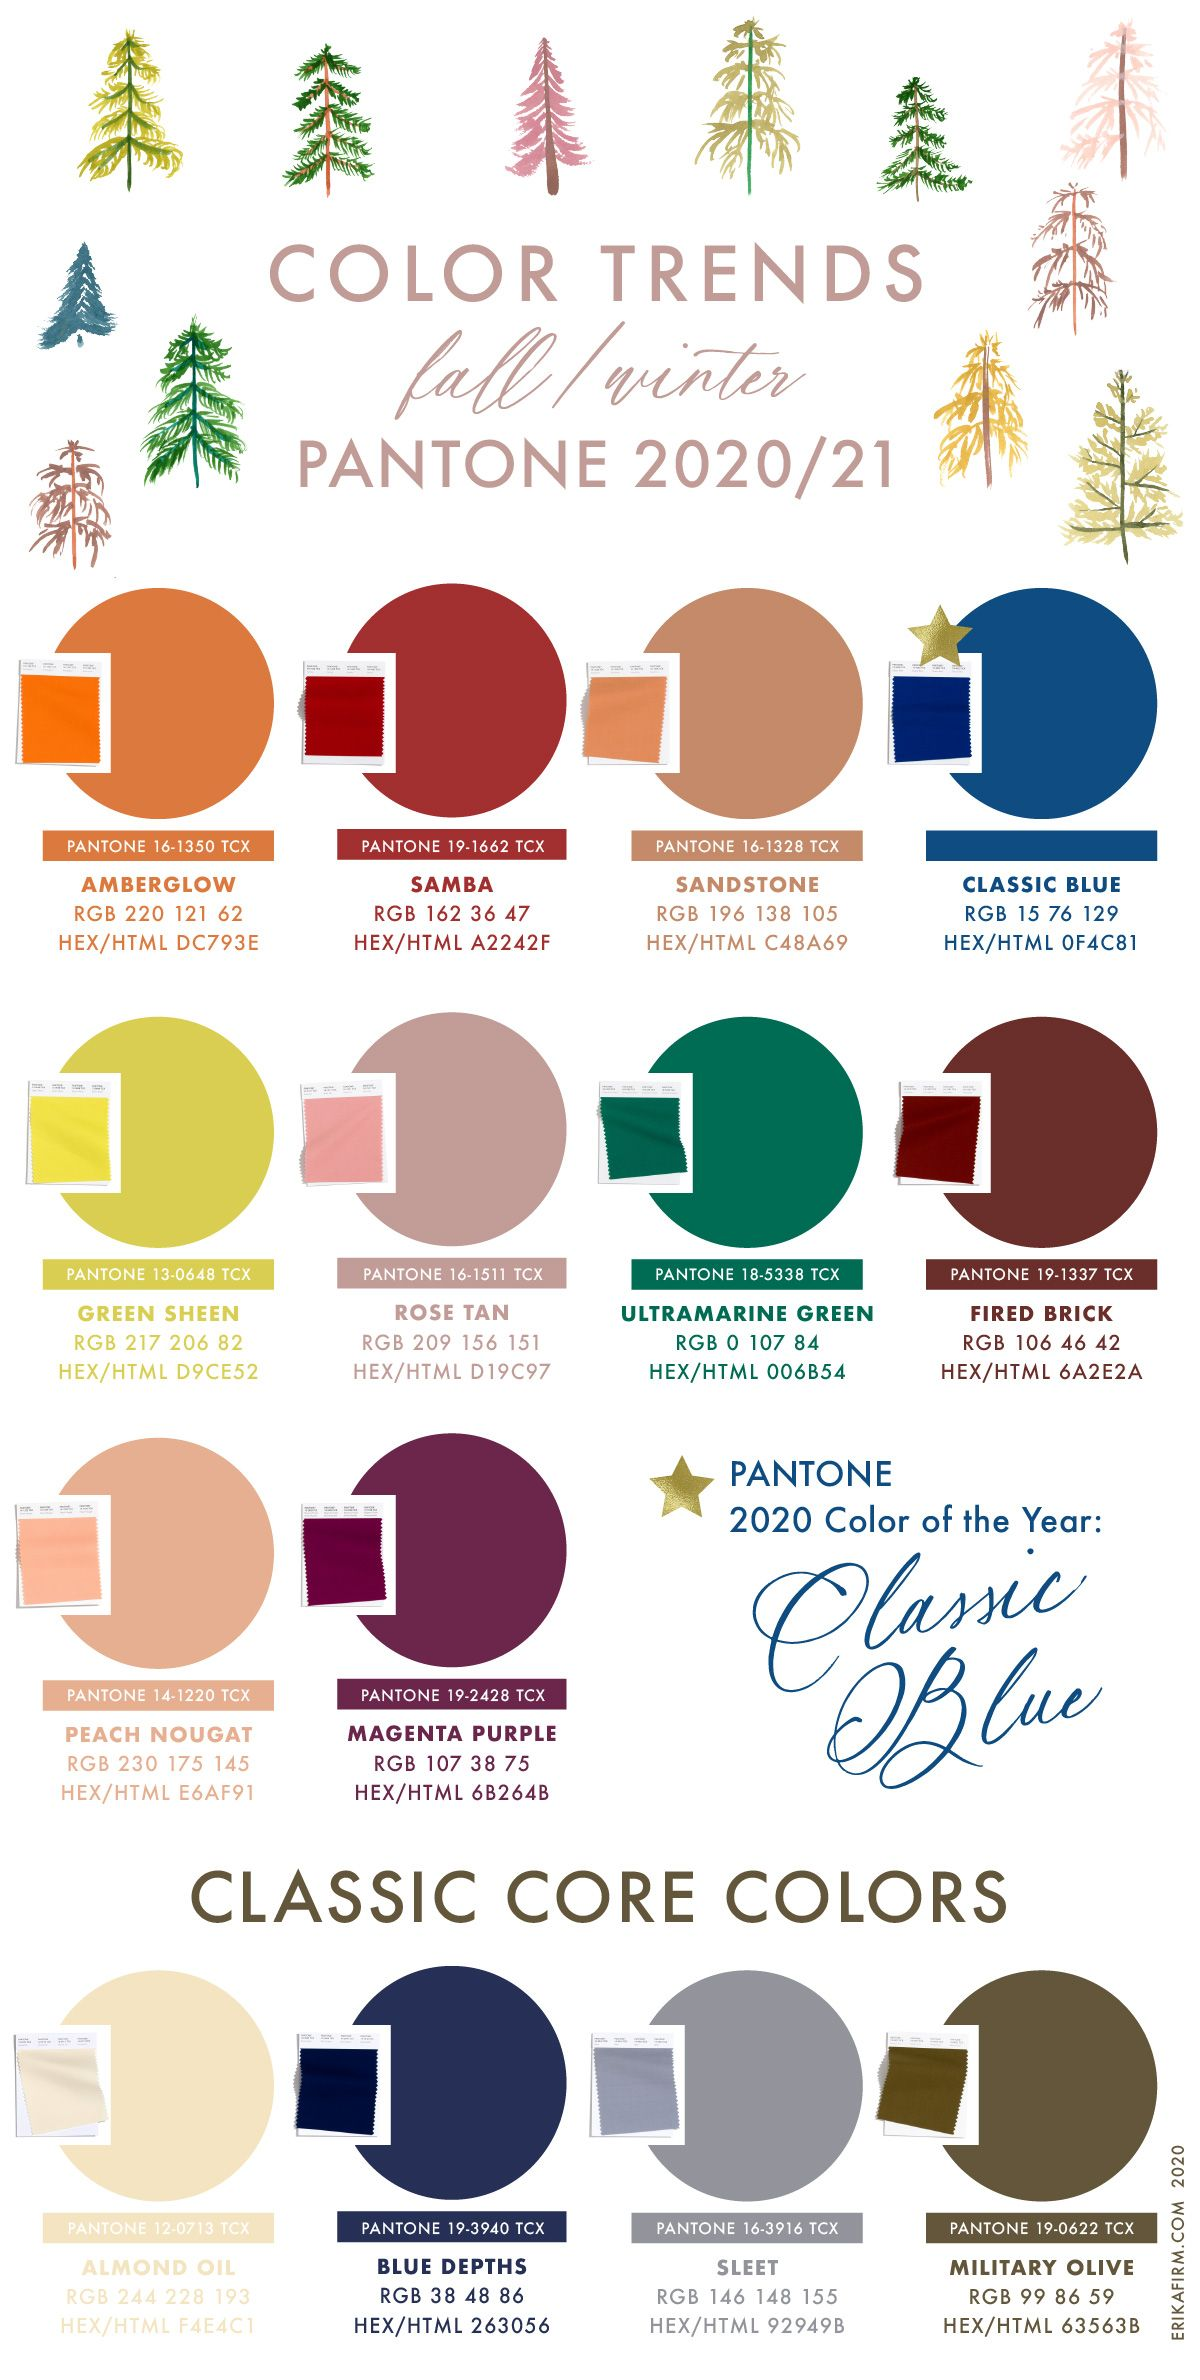 fall 2020 winter 2021 pantone colors trends in color fashion 9285 274 c